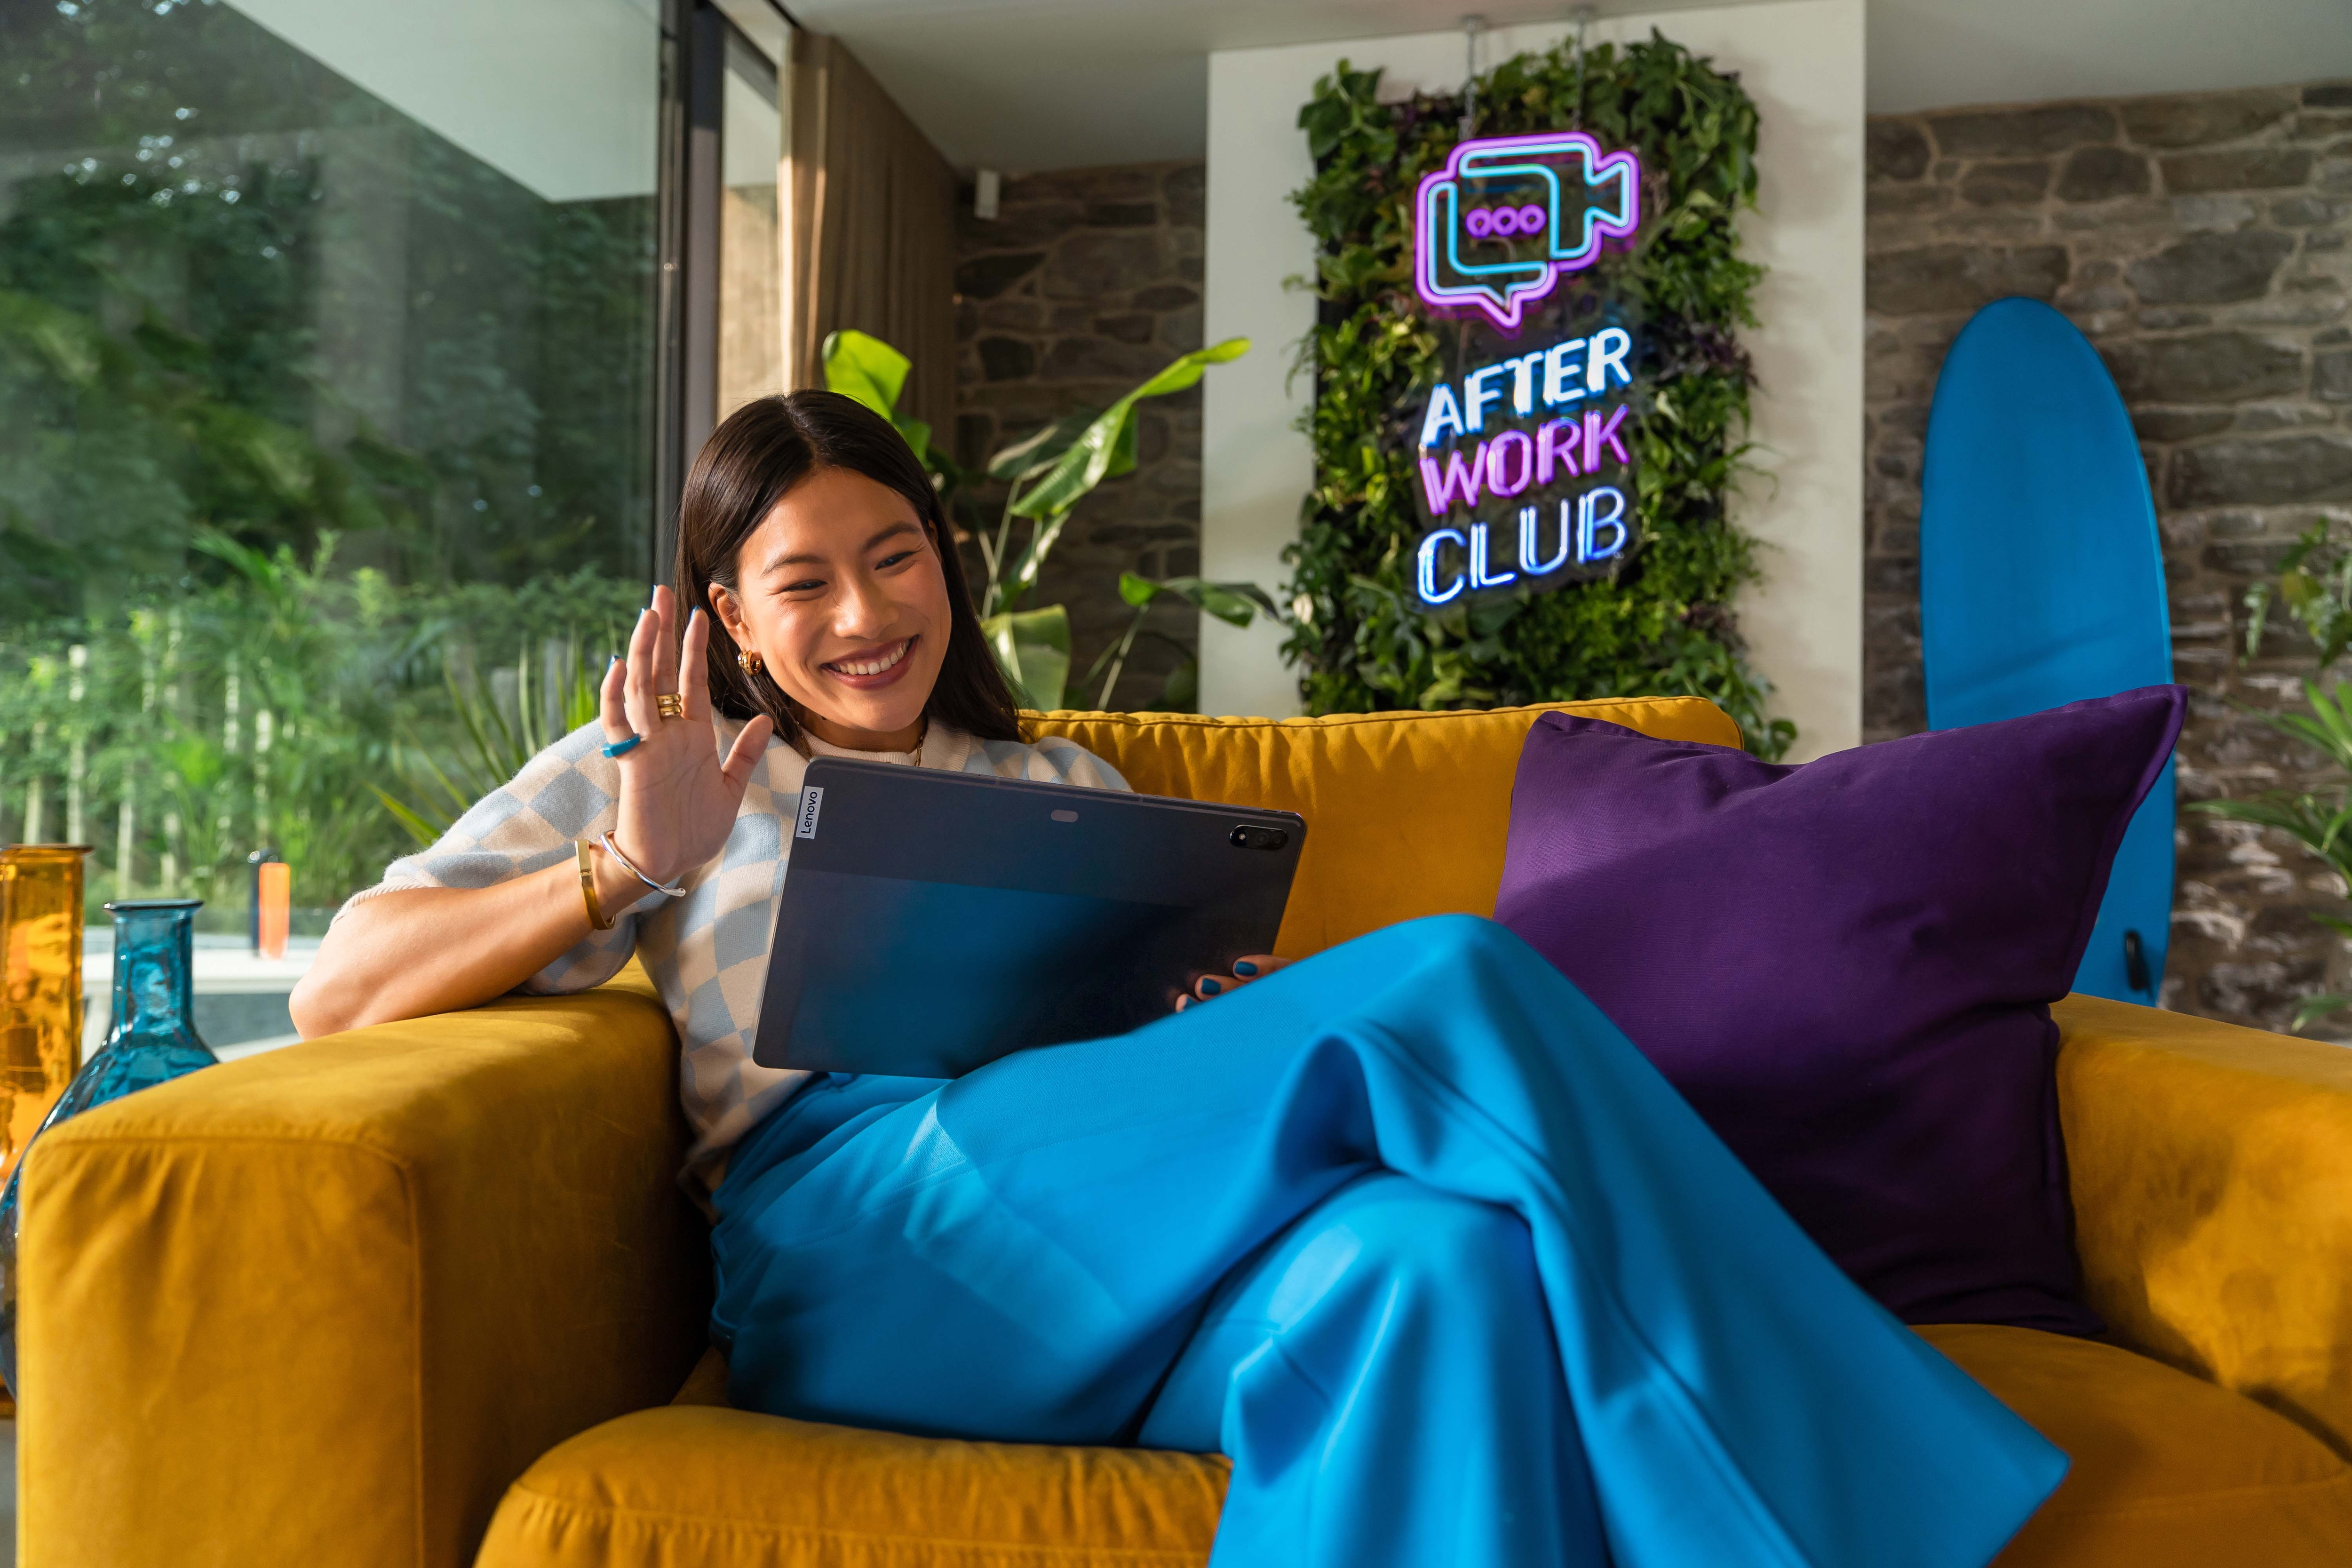 Woman relaxing in her After Work Club on a sofa set, wave hello to online friends on her Lenovo tablet